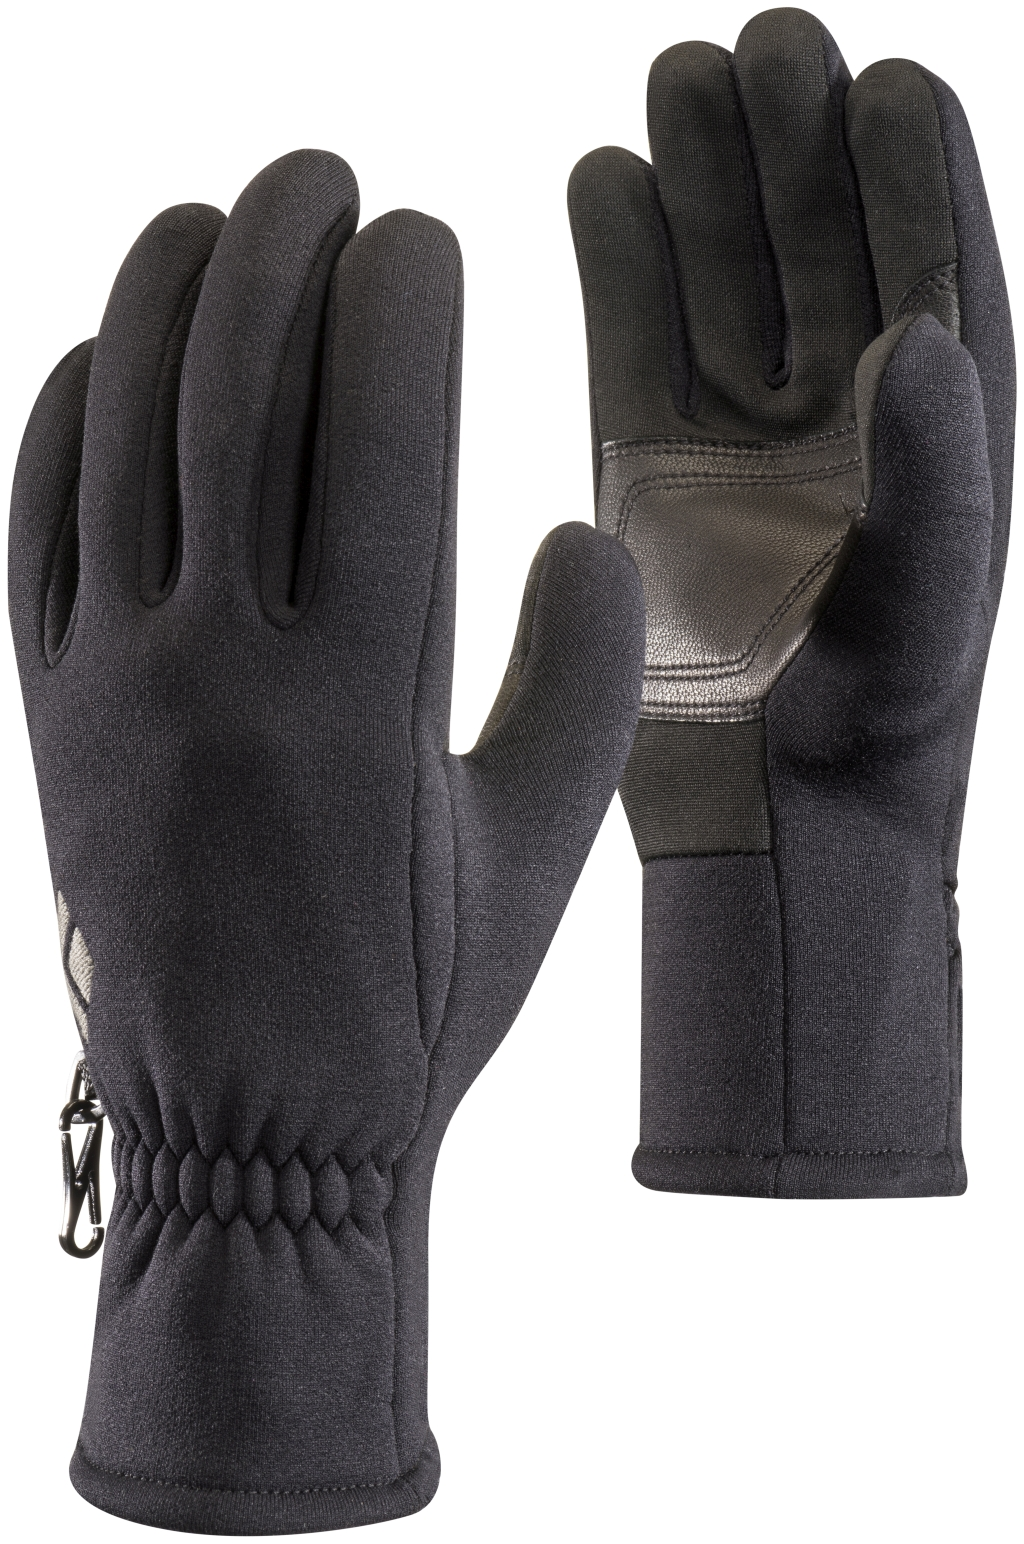 Black Diamond Heavyweight Screentap Fleece Gloves Black-30